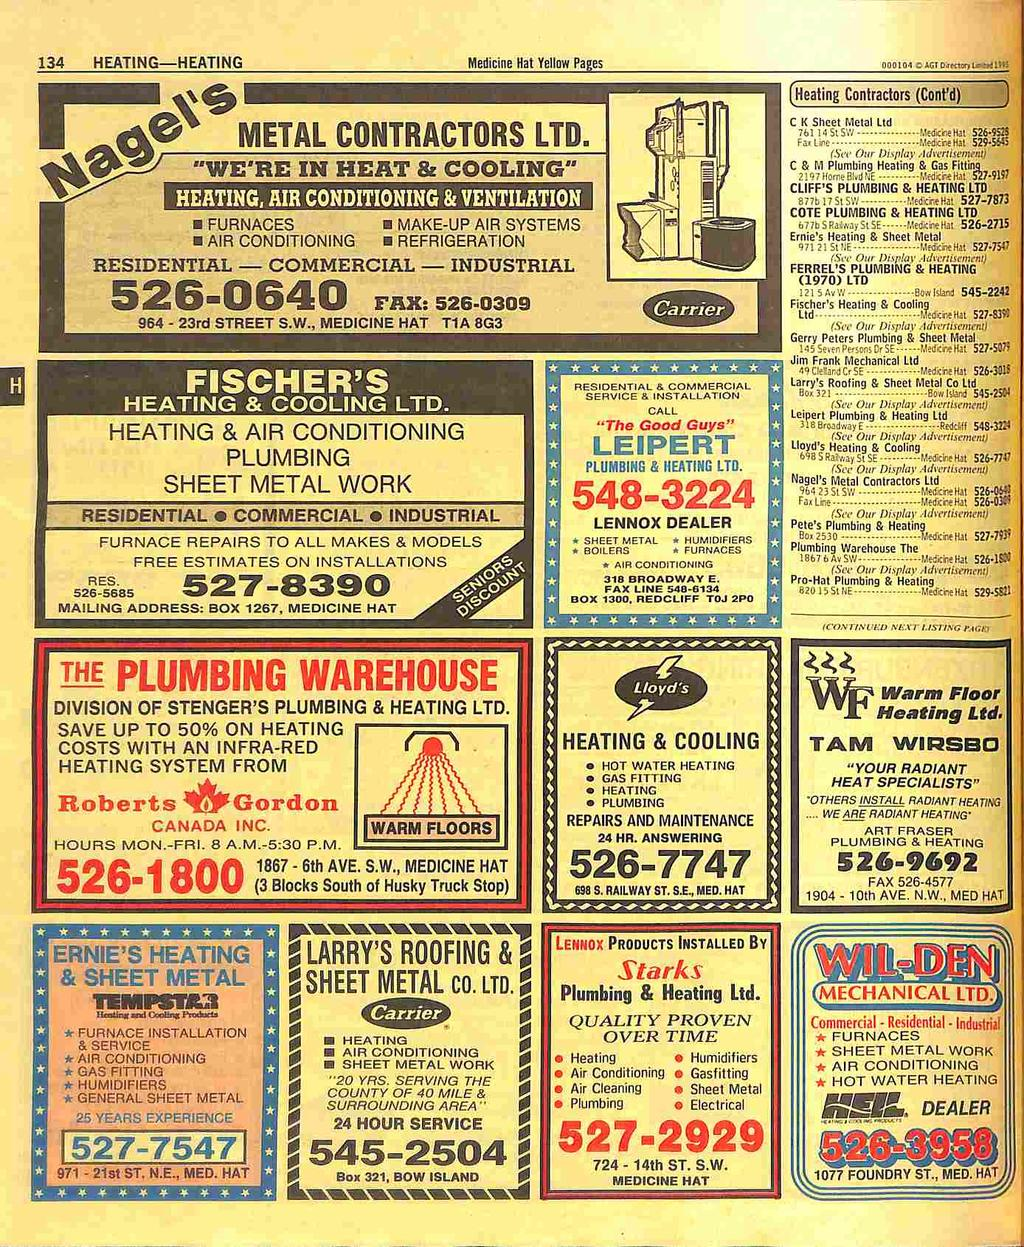 "134 HEATING HEATING Medicine Hat Yellow Pages DOOIM CtGT PKnouati!""! METAL CONTRACTORS LTD."